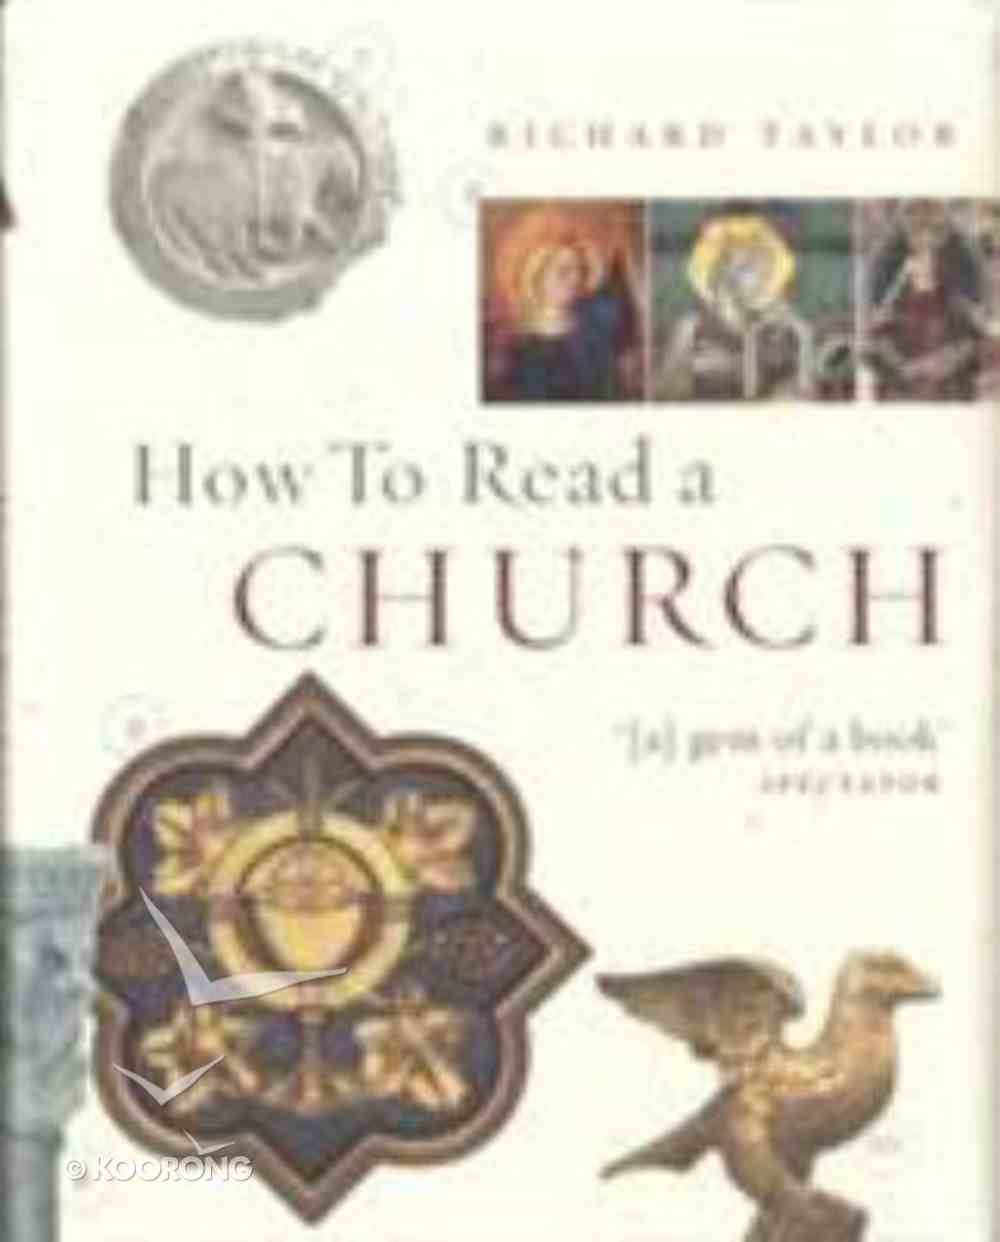 How to Read a Church: An Illustrated Guide to Images, Symbols and Meanings in Churches and Cathedrals Hardback